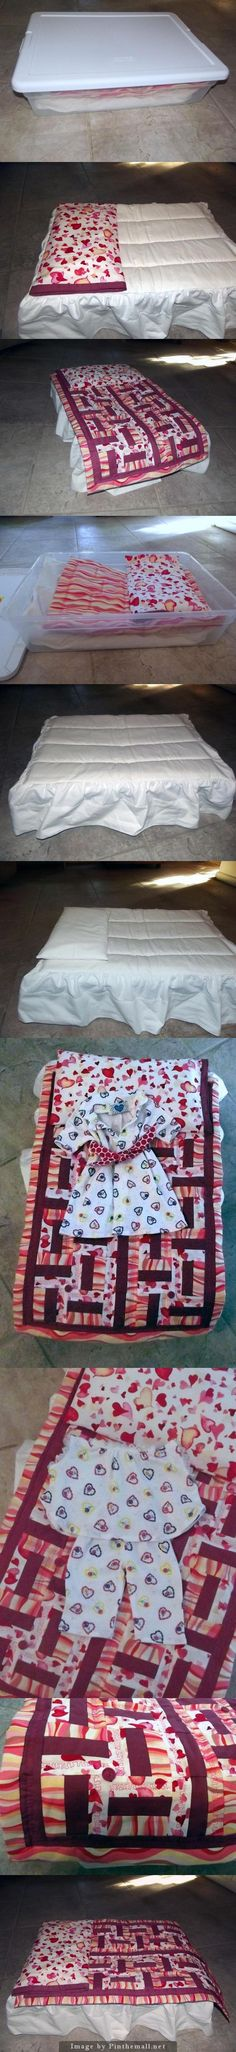 This Is The Bed I Made For Mackenzieu0027s AG Doll. I Used A Plastic Bin